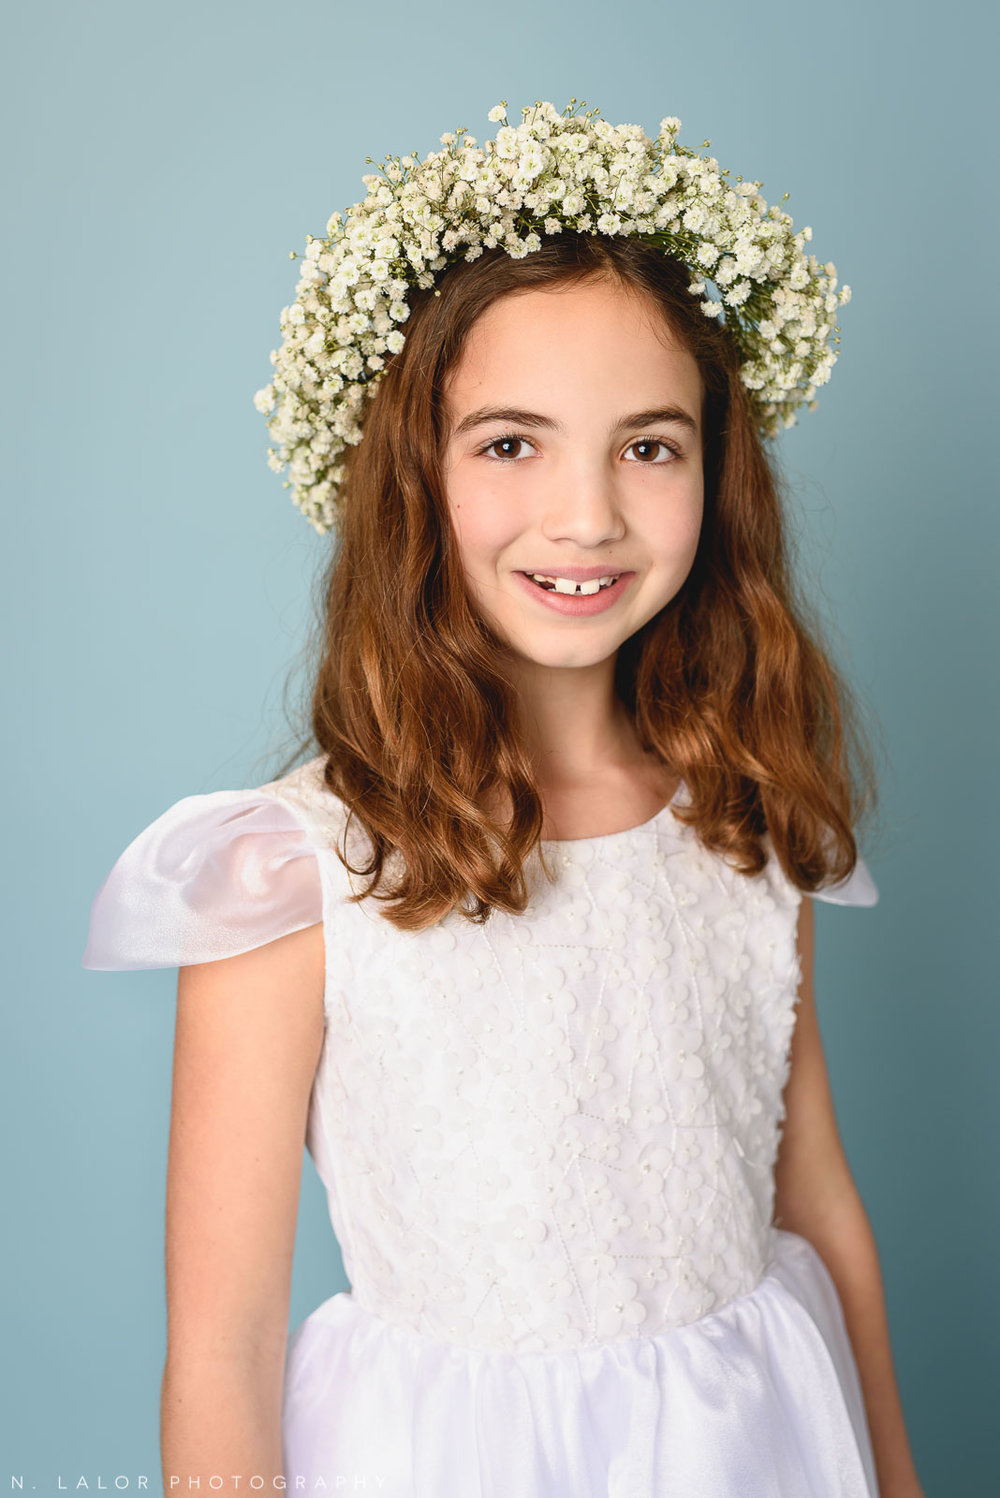 Ready for first communion. Dress by Stella M'Lia. Tween girl fashion portrait by N. Lalor Photography. New Canaan, Connecticut.